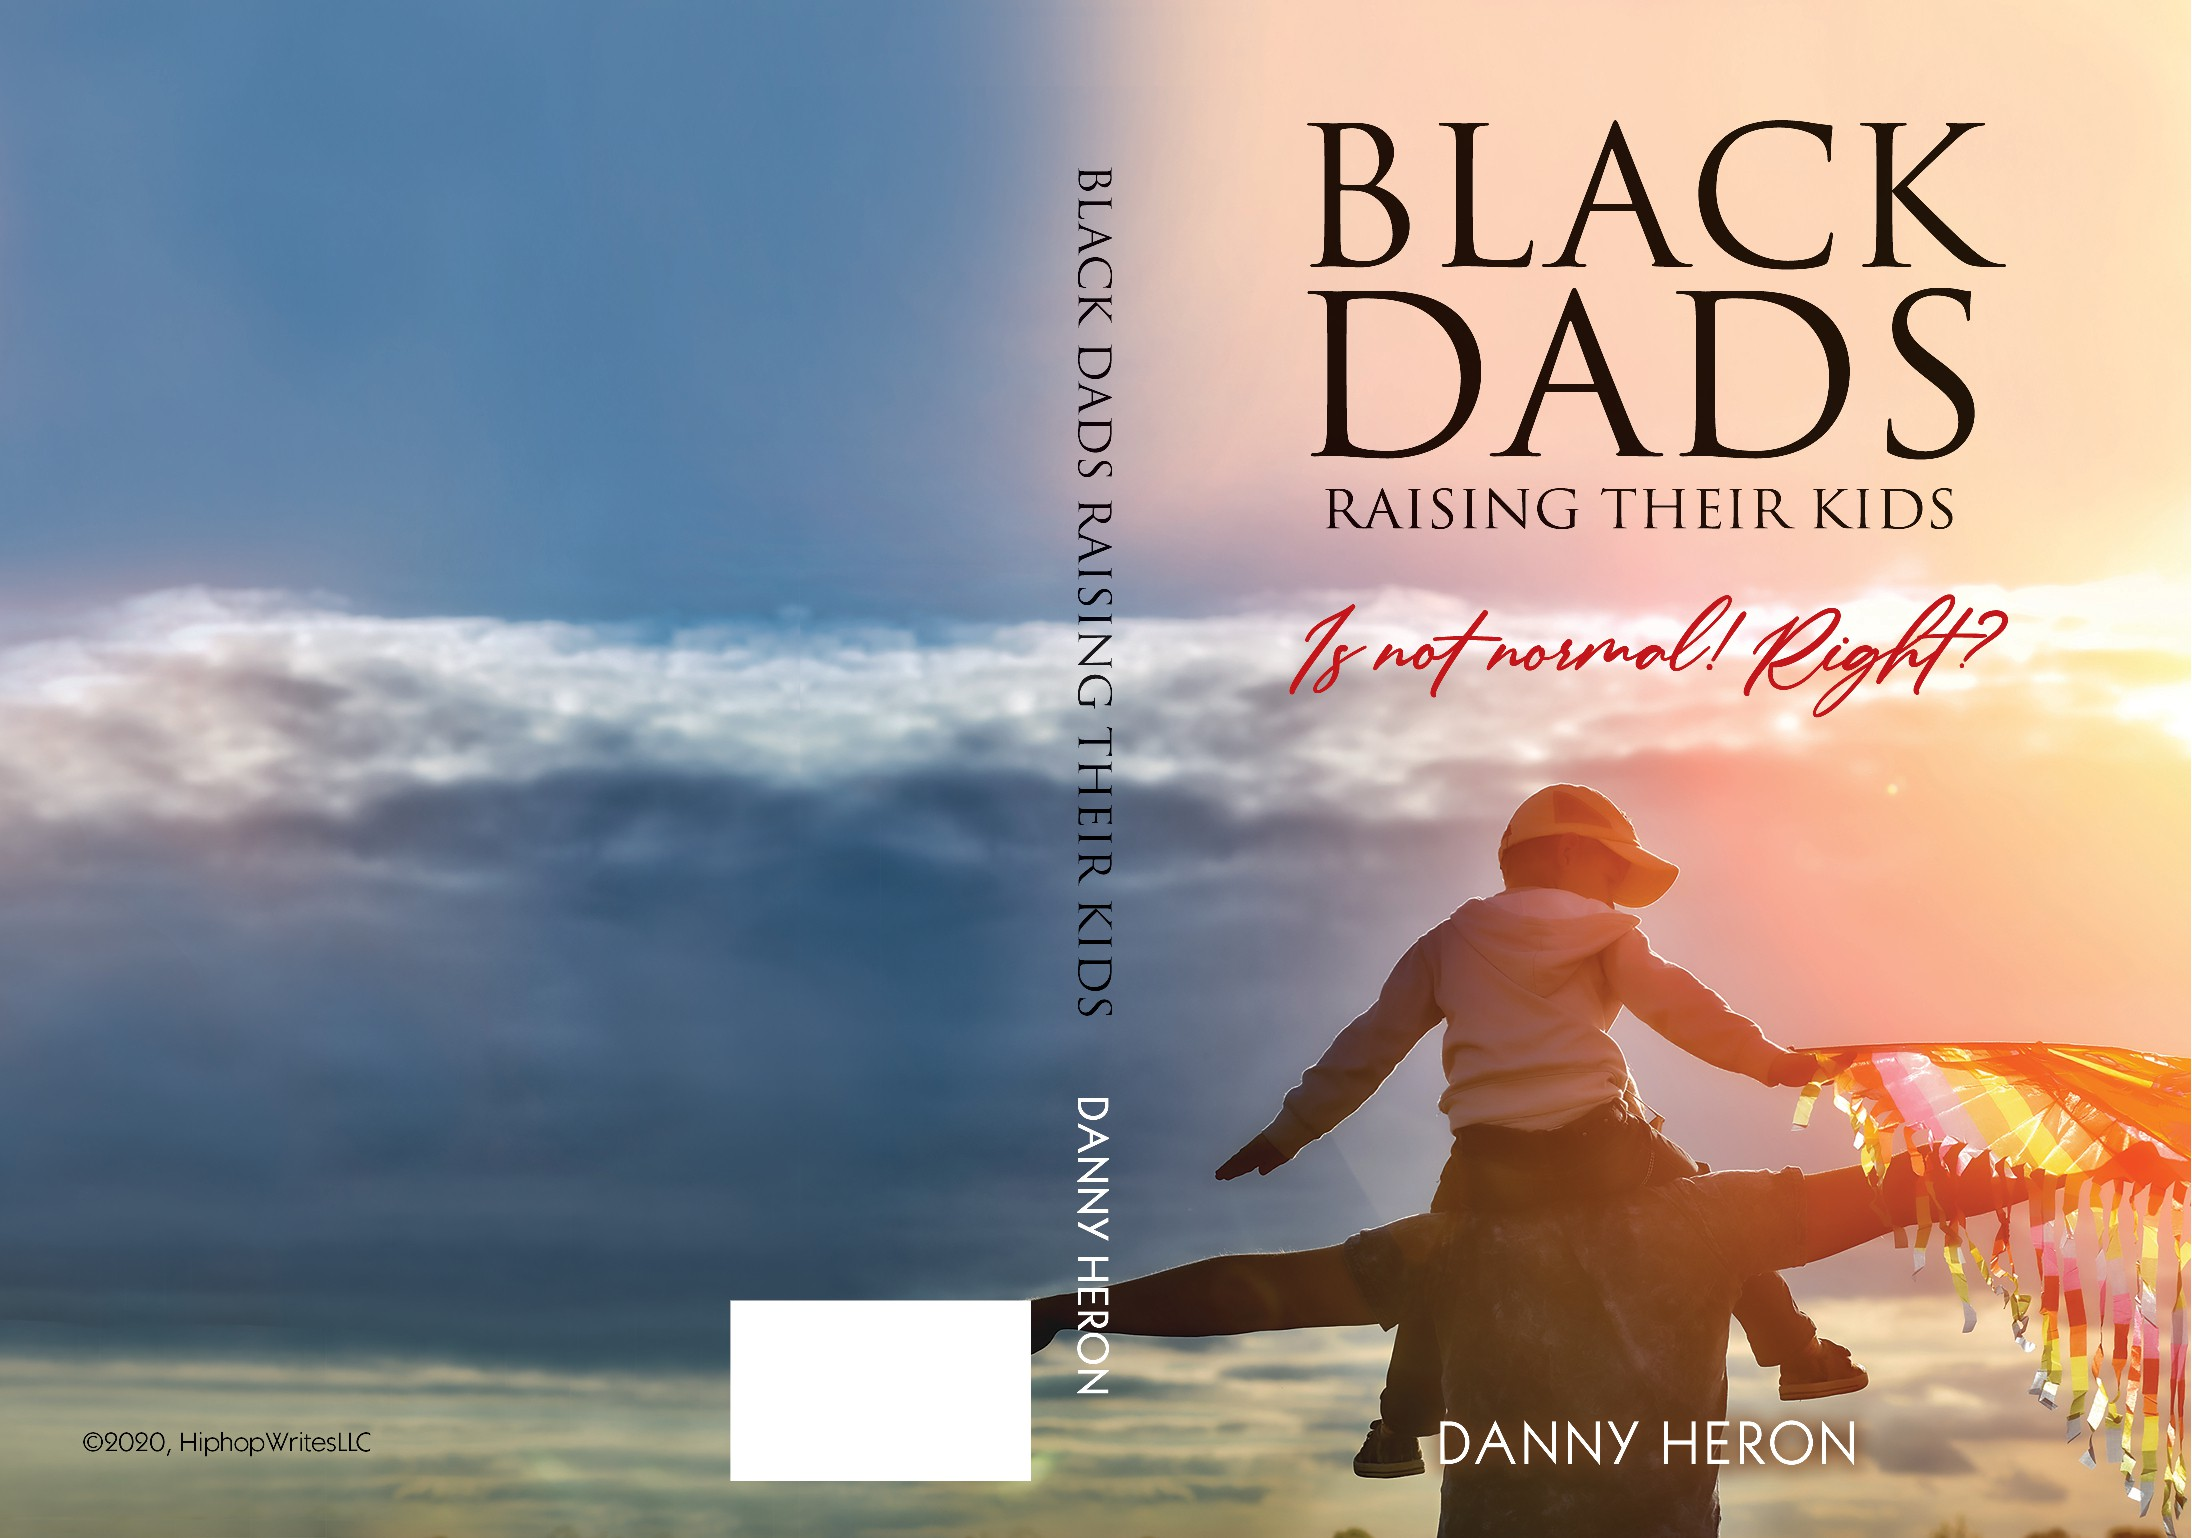 Book Cover that tells the story of a positive black father